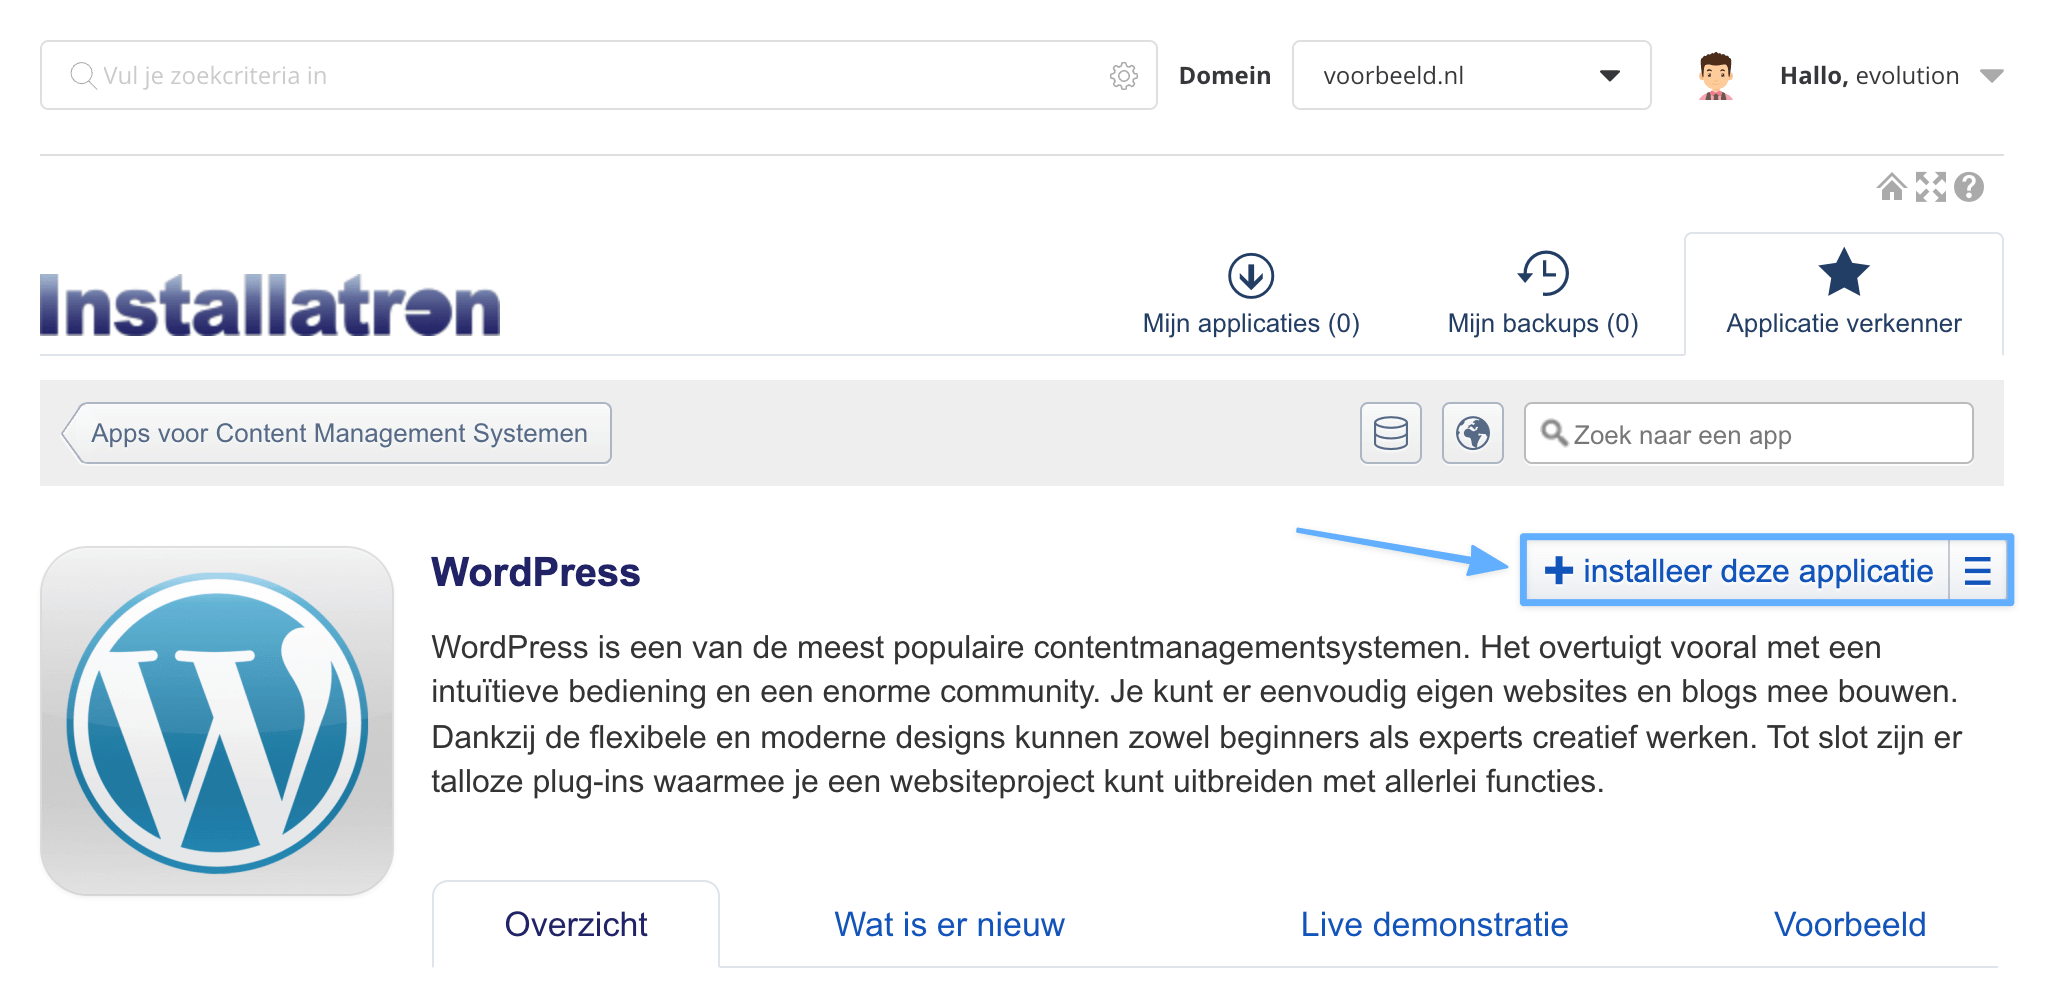 WordPress installeren knop